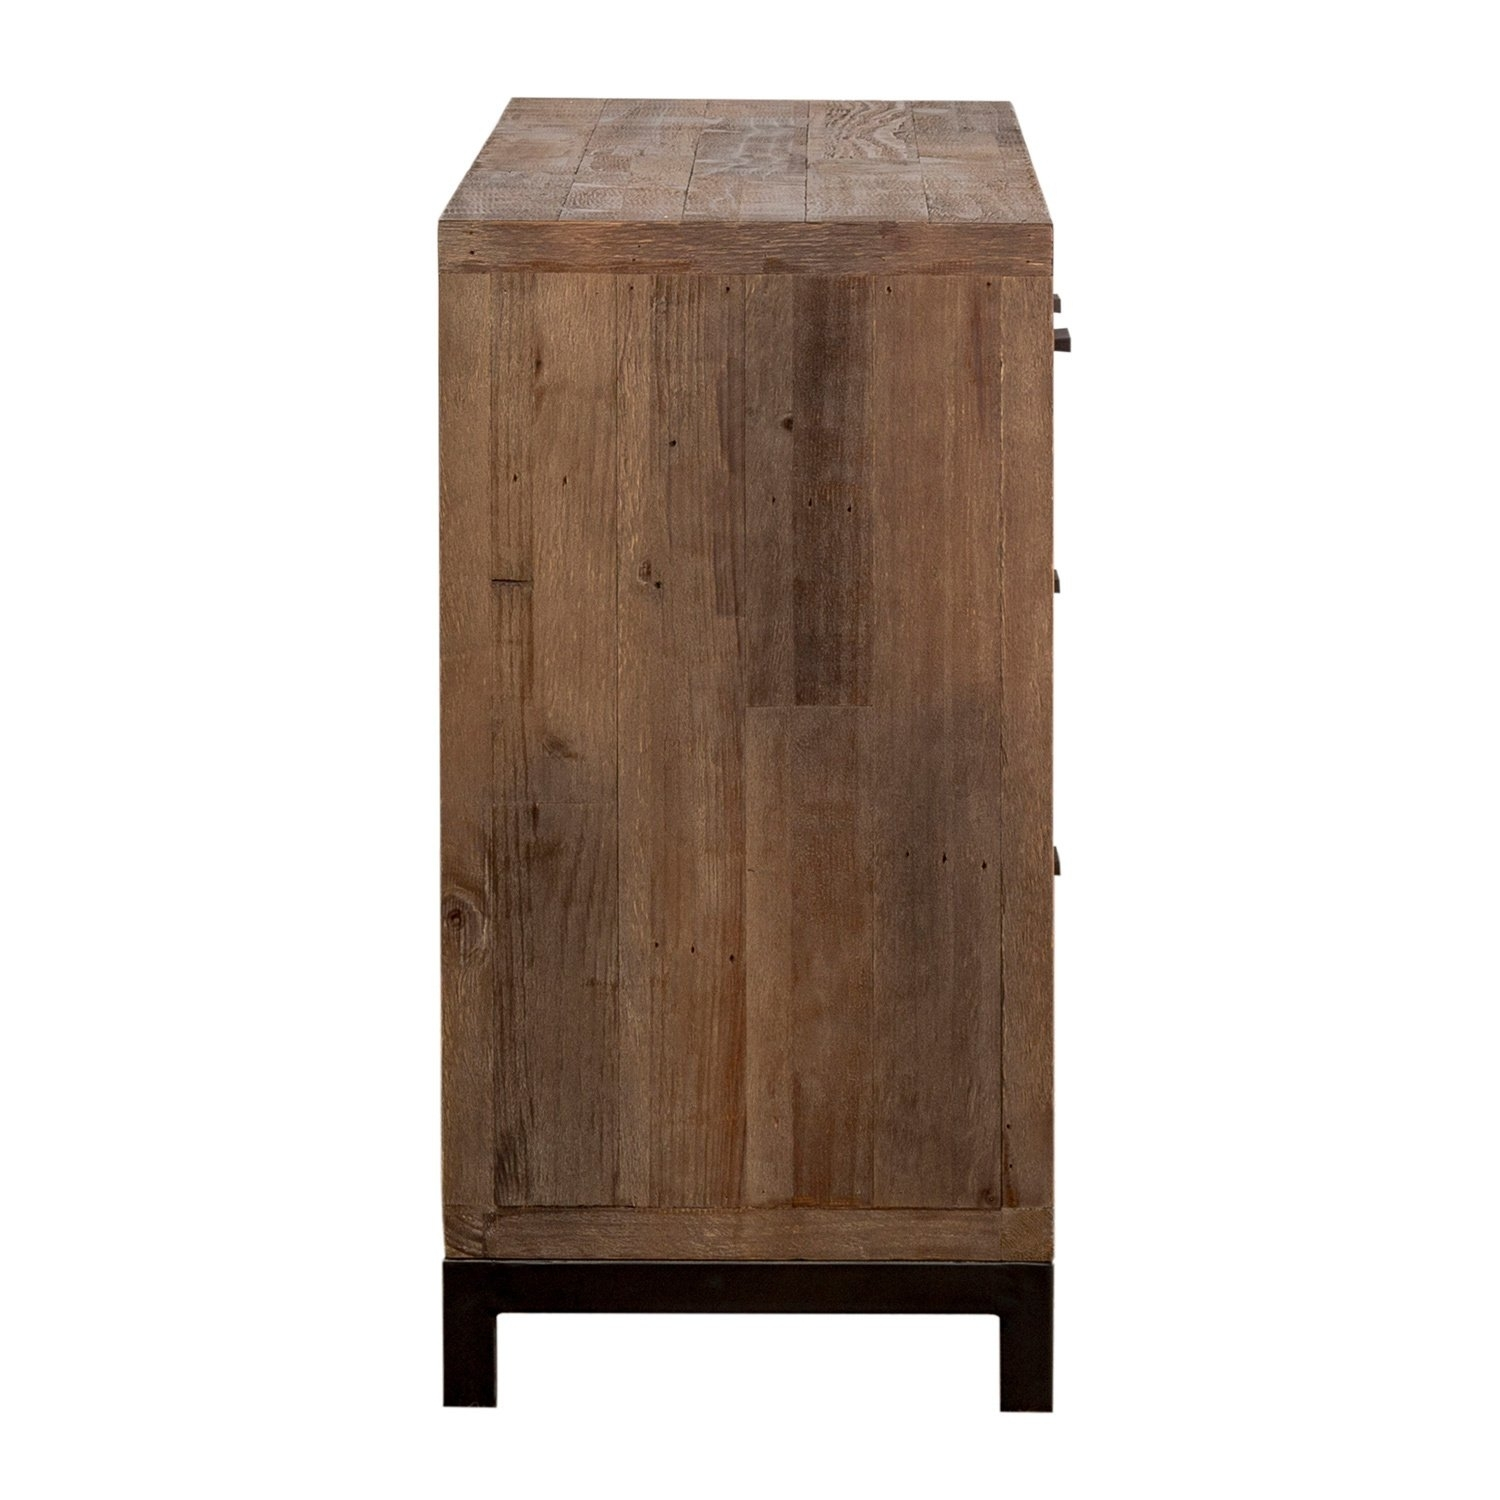 Shop Klamath Reclaimed Pine 3 Drawer 2 Door Sideboardkosas Home Within Newest Reclaimed Pine & Iron 4 Door Sideboards (View 17 of 20)